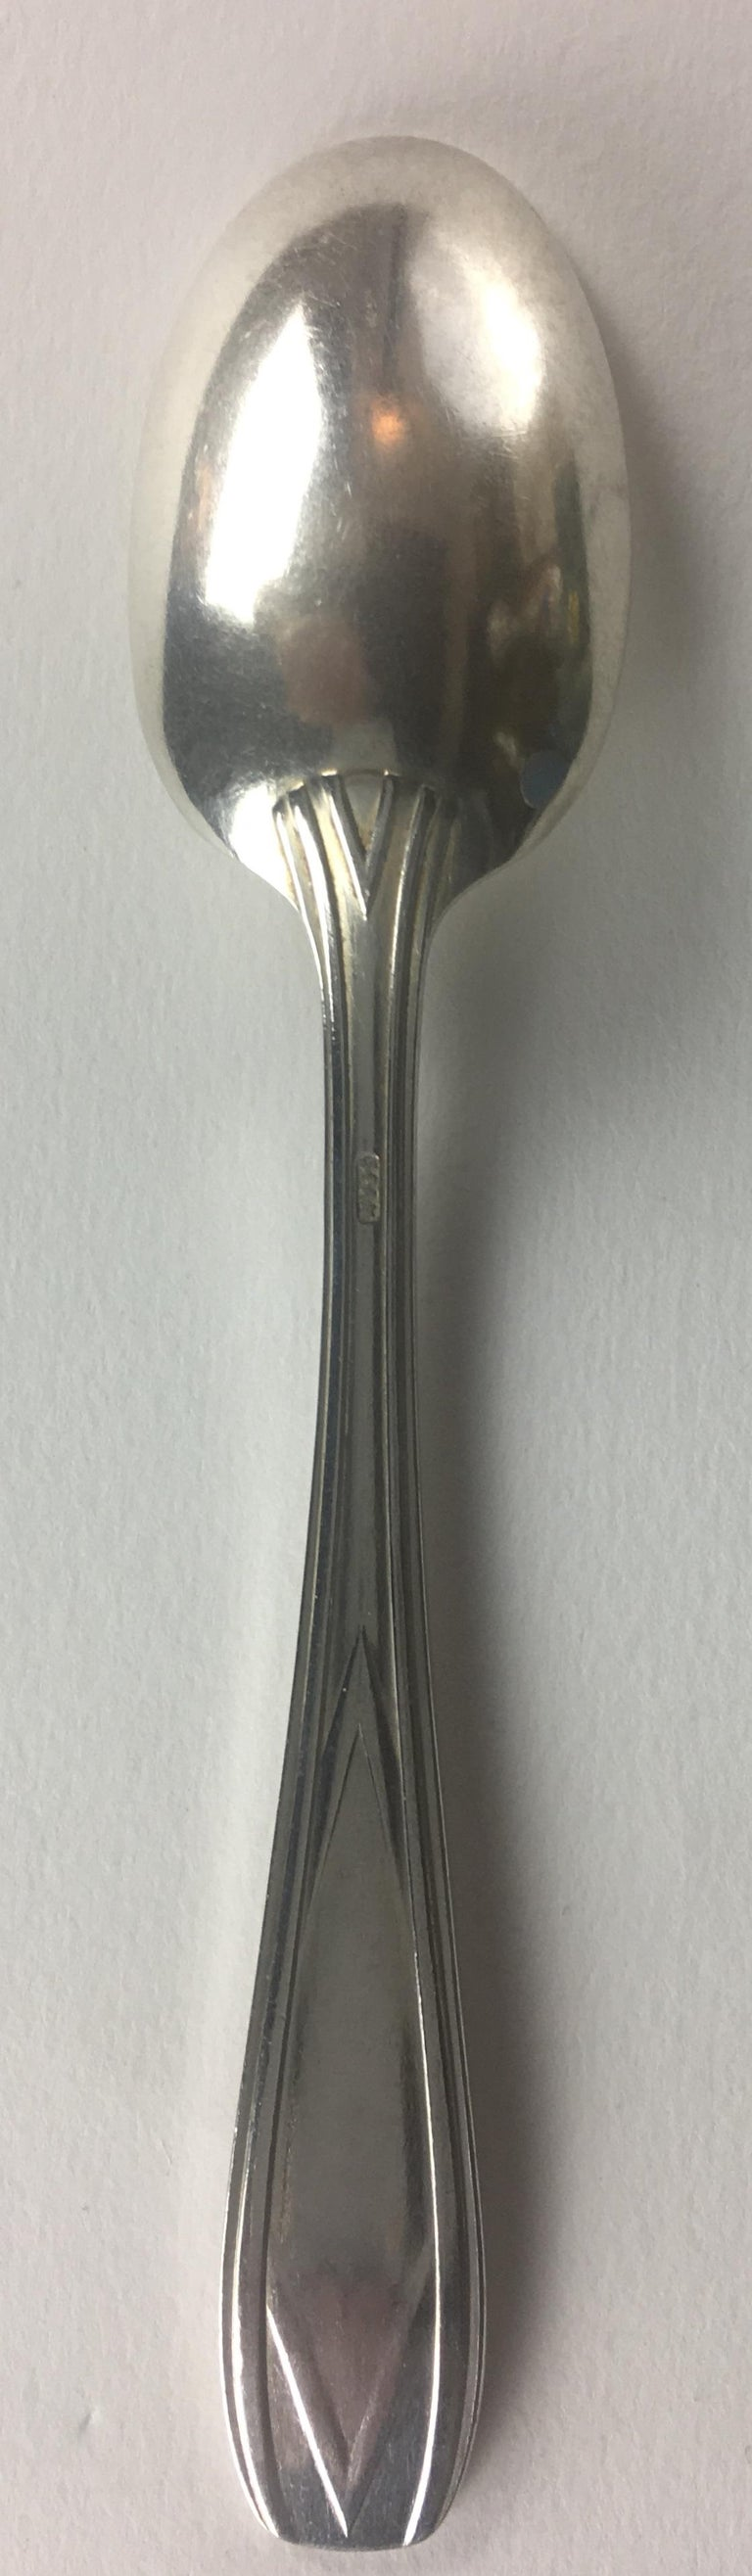 20th Century French Art Deco Silver Plated Tea Spoon Set of 12 with Original Box For Sale